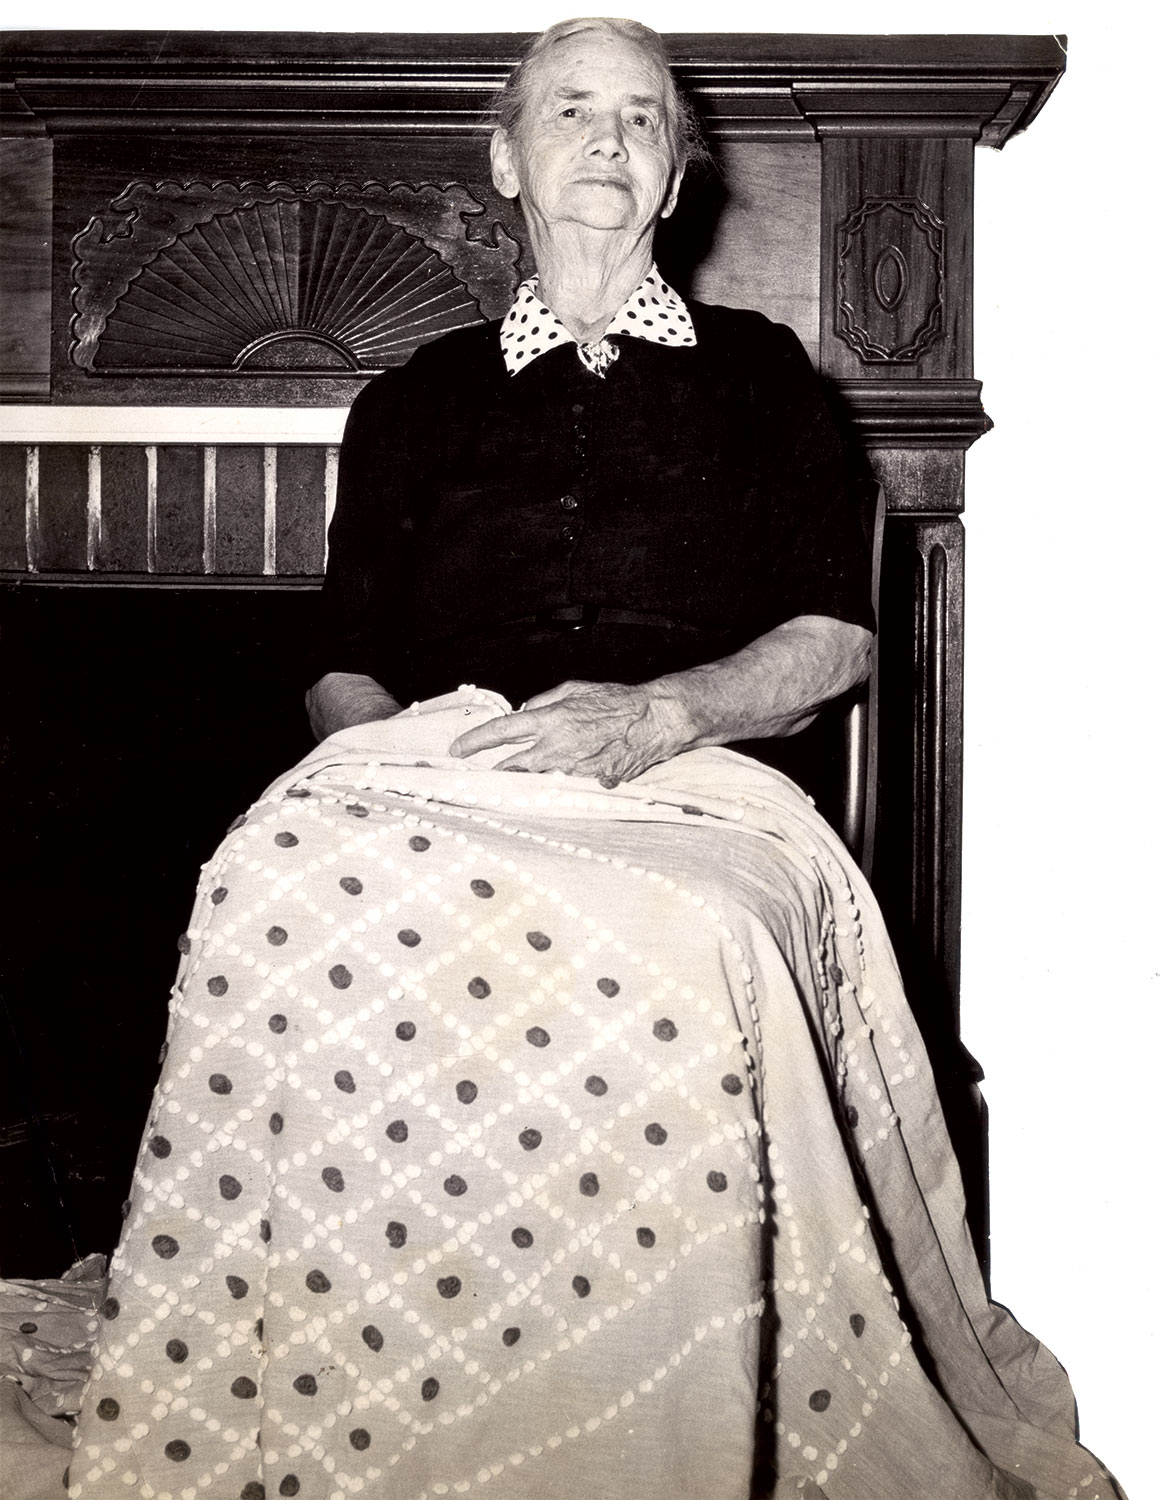 CATHERINE EVANS WHITENER with a candlewick bedspread, circa 1960.  Courtesy of Bandy Heritage Center for Northwest Georgia, Carpet and Rug Institute Photograph Collection.